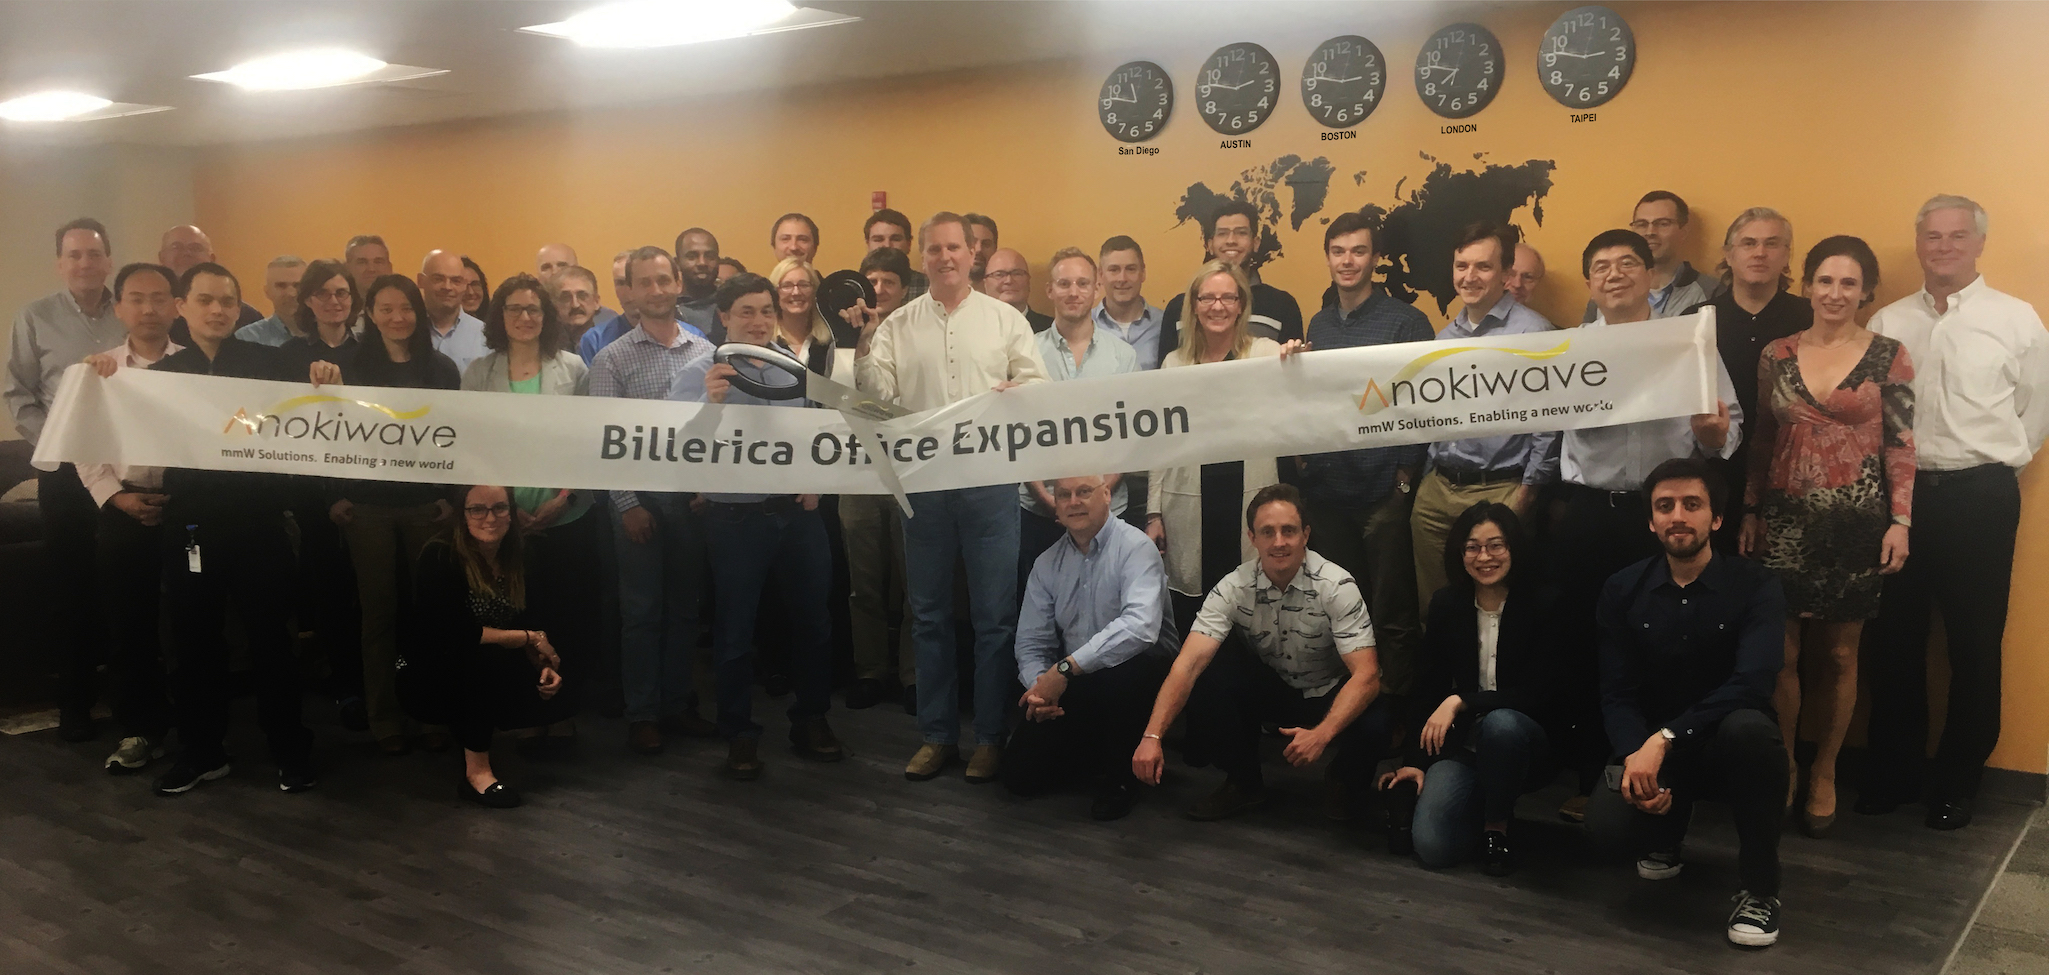 Anokiwave celebrates the expansion of the Billerica, MA office